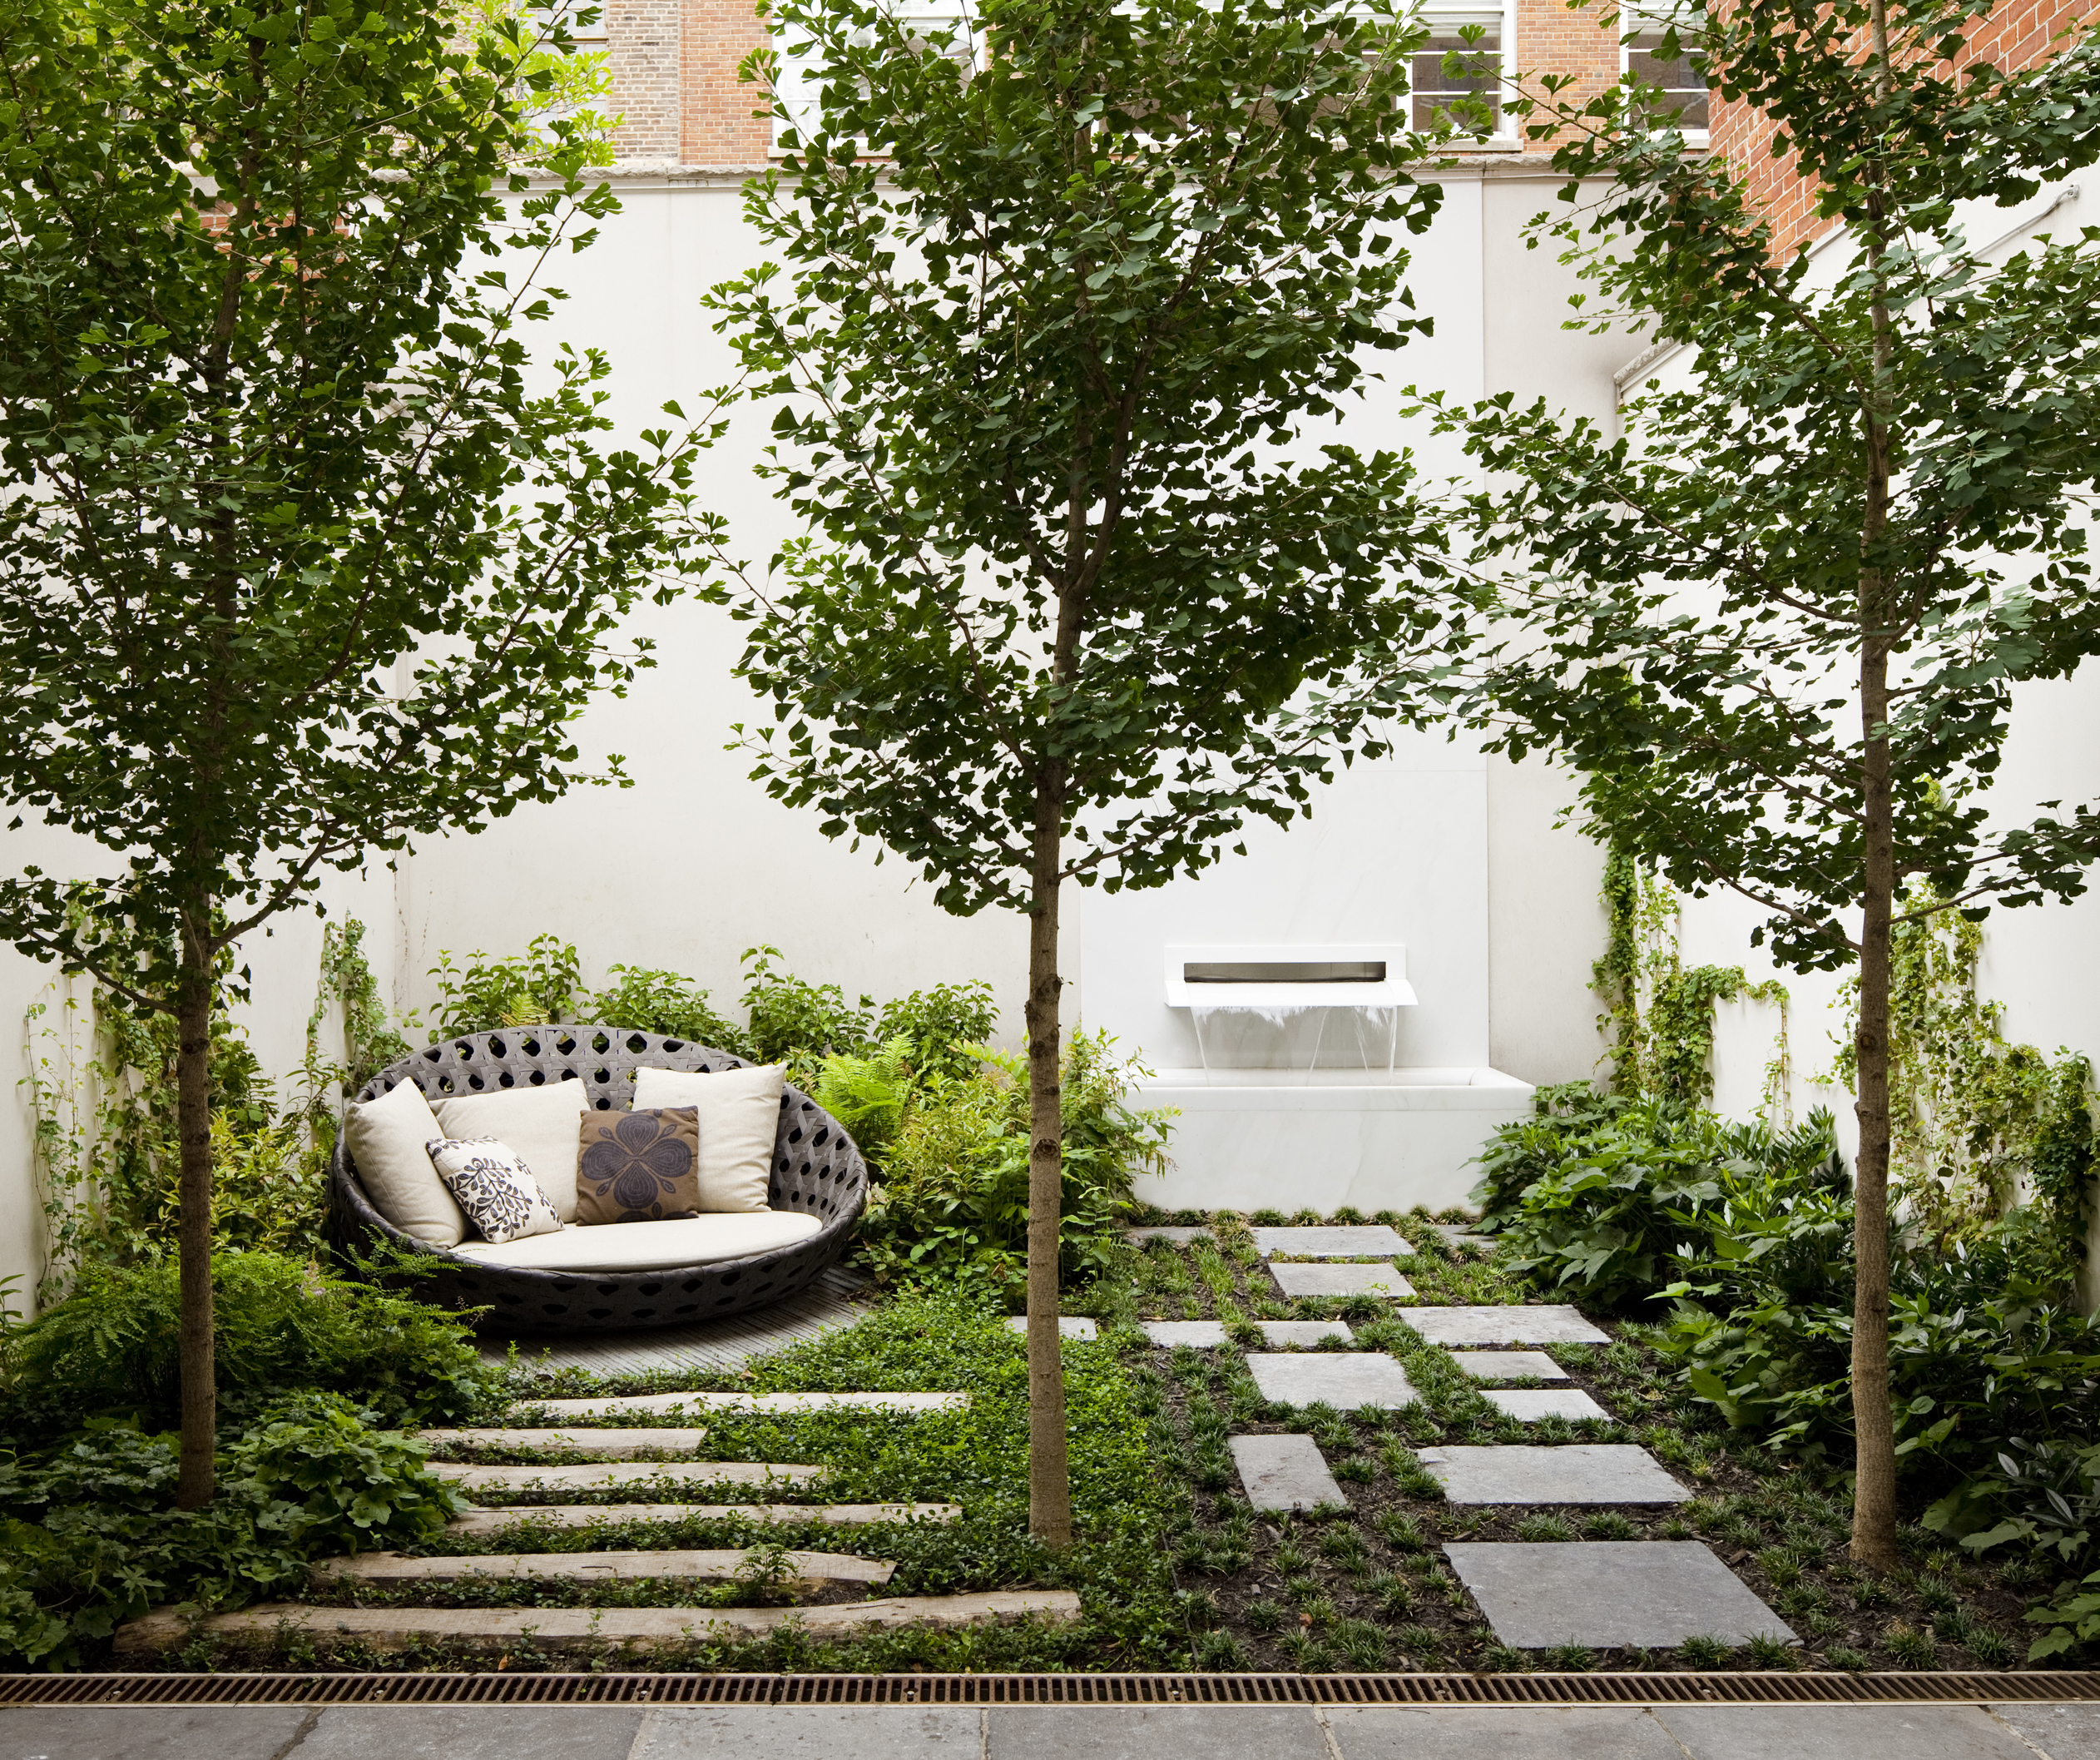 Asla 2011 professional awards carnegie hill house for Arboles pequenos para jardin